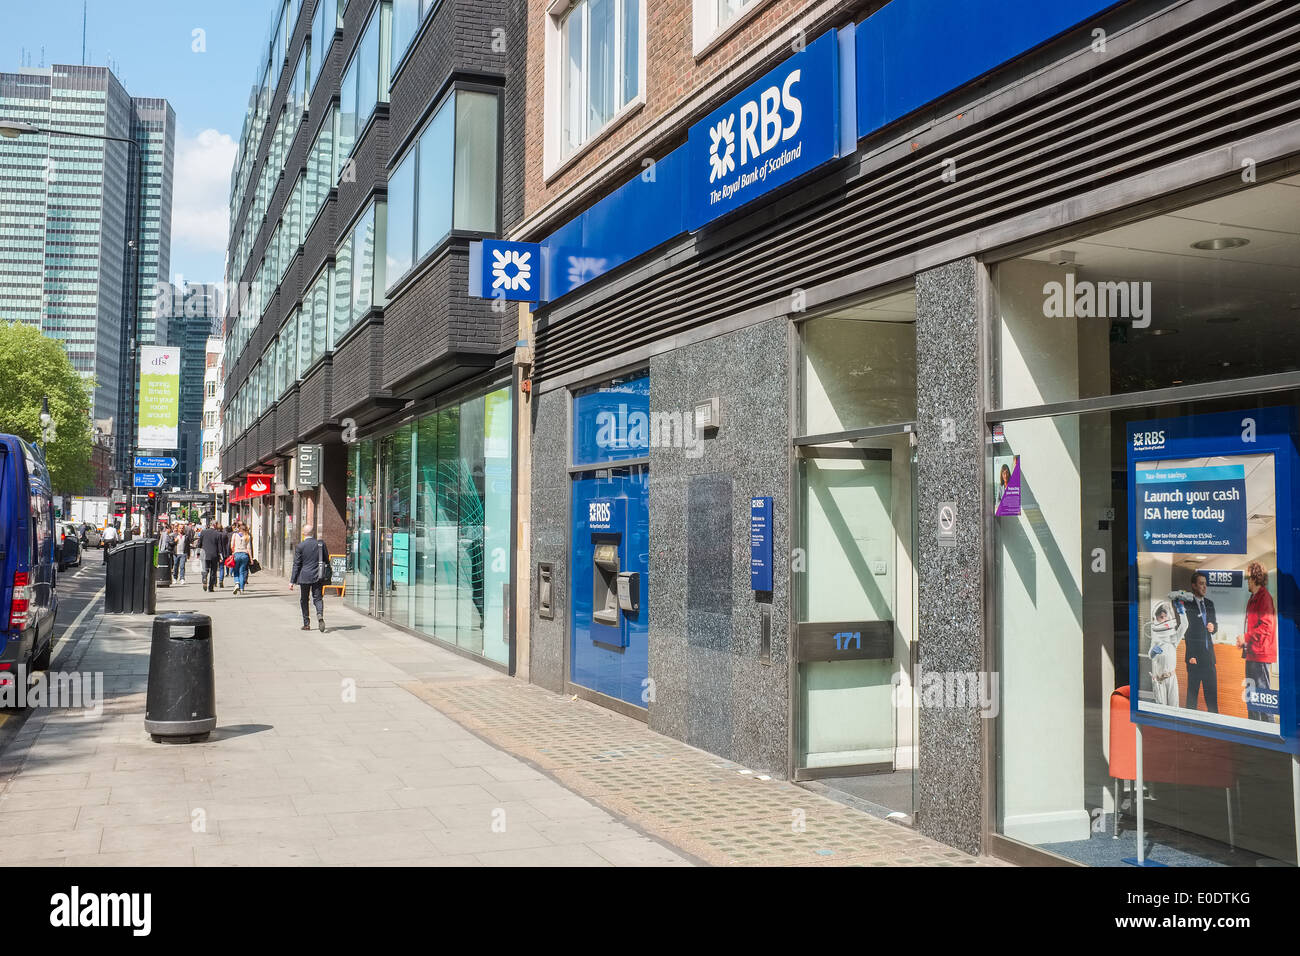 The entrance to the Tottenham Court Road branch of the Royal Bank of Scotland, London, England, UK on a sunny day - Stock Image